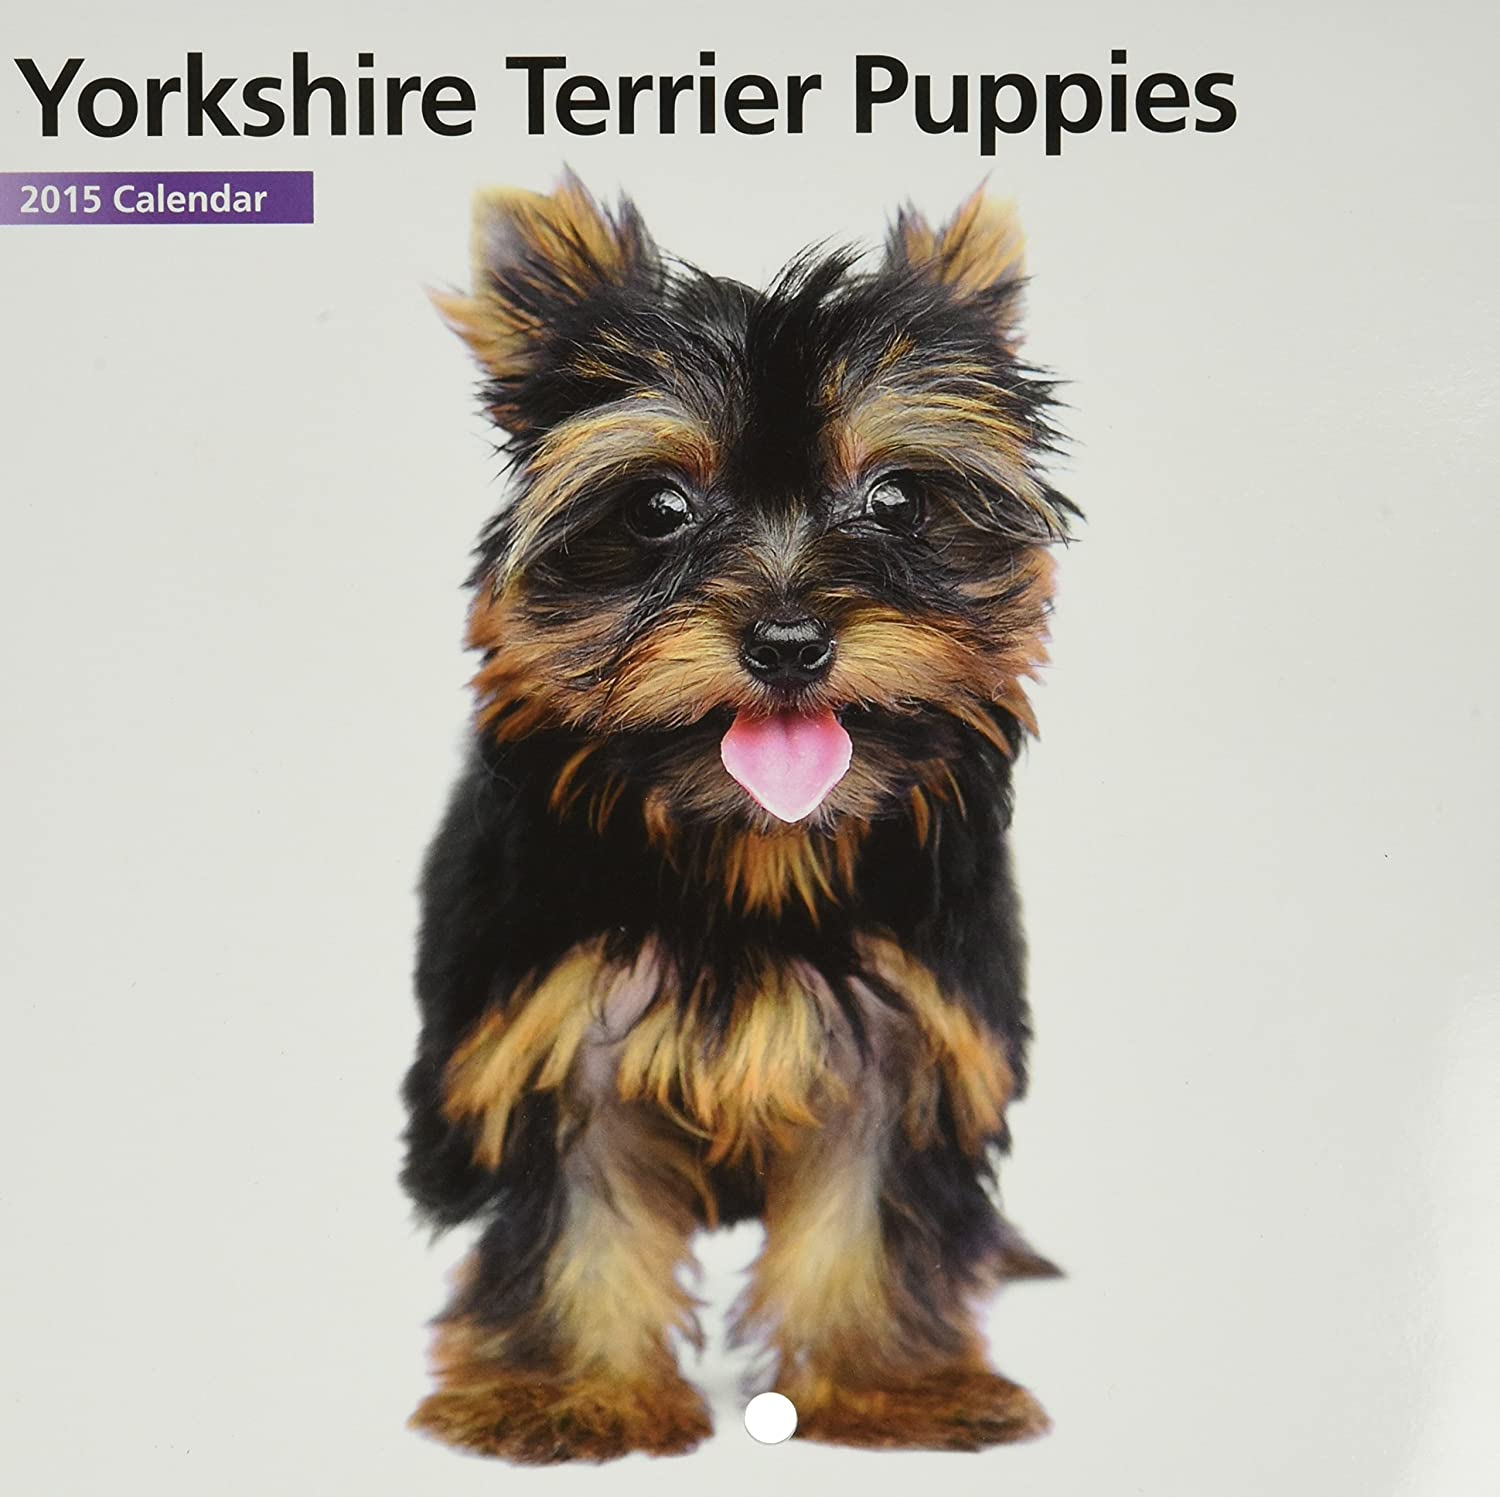 Amazoncom Magnet Steel Yorkshire Terrier Puppies Mini 2015 Wall